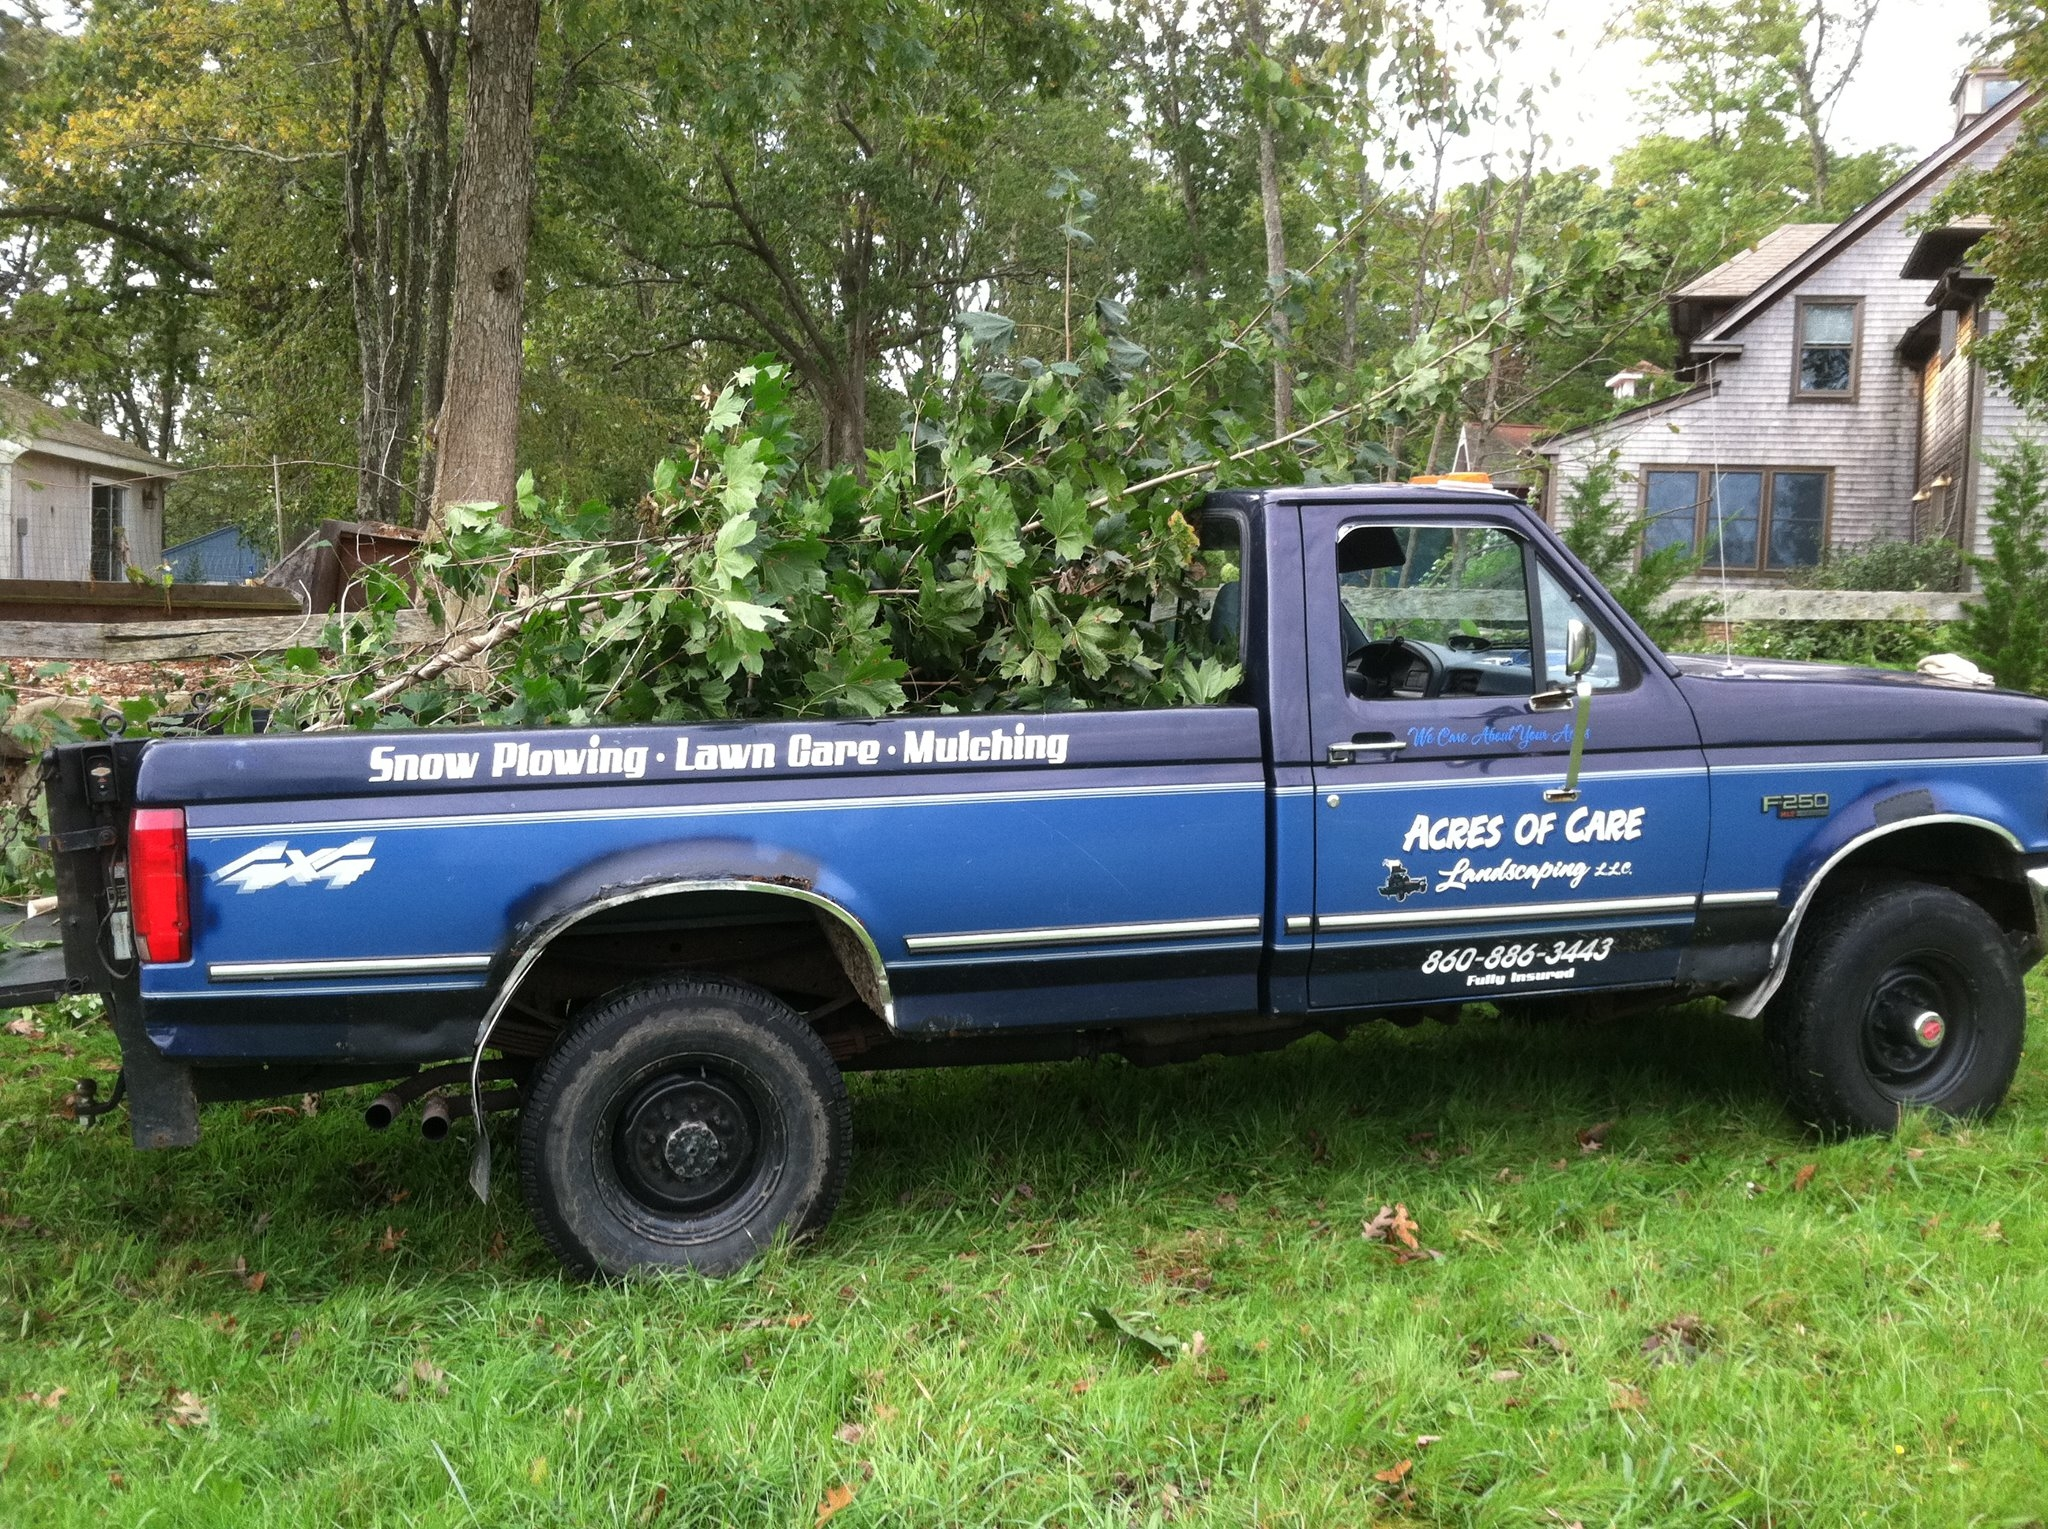 Acres of Care Landscaping LLC image 2